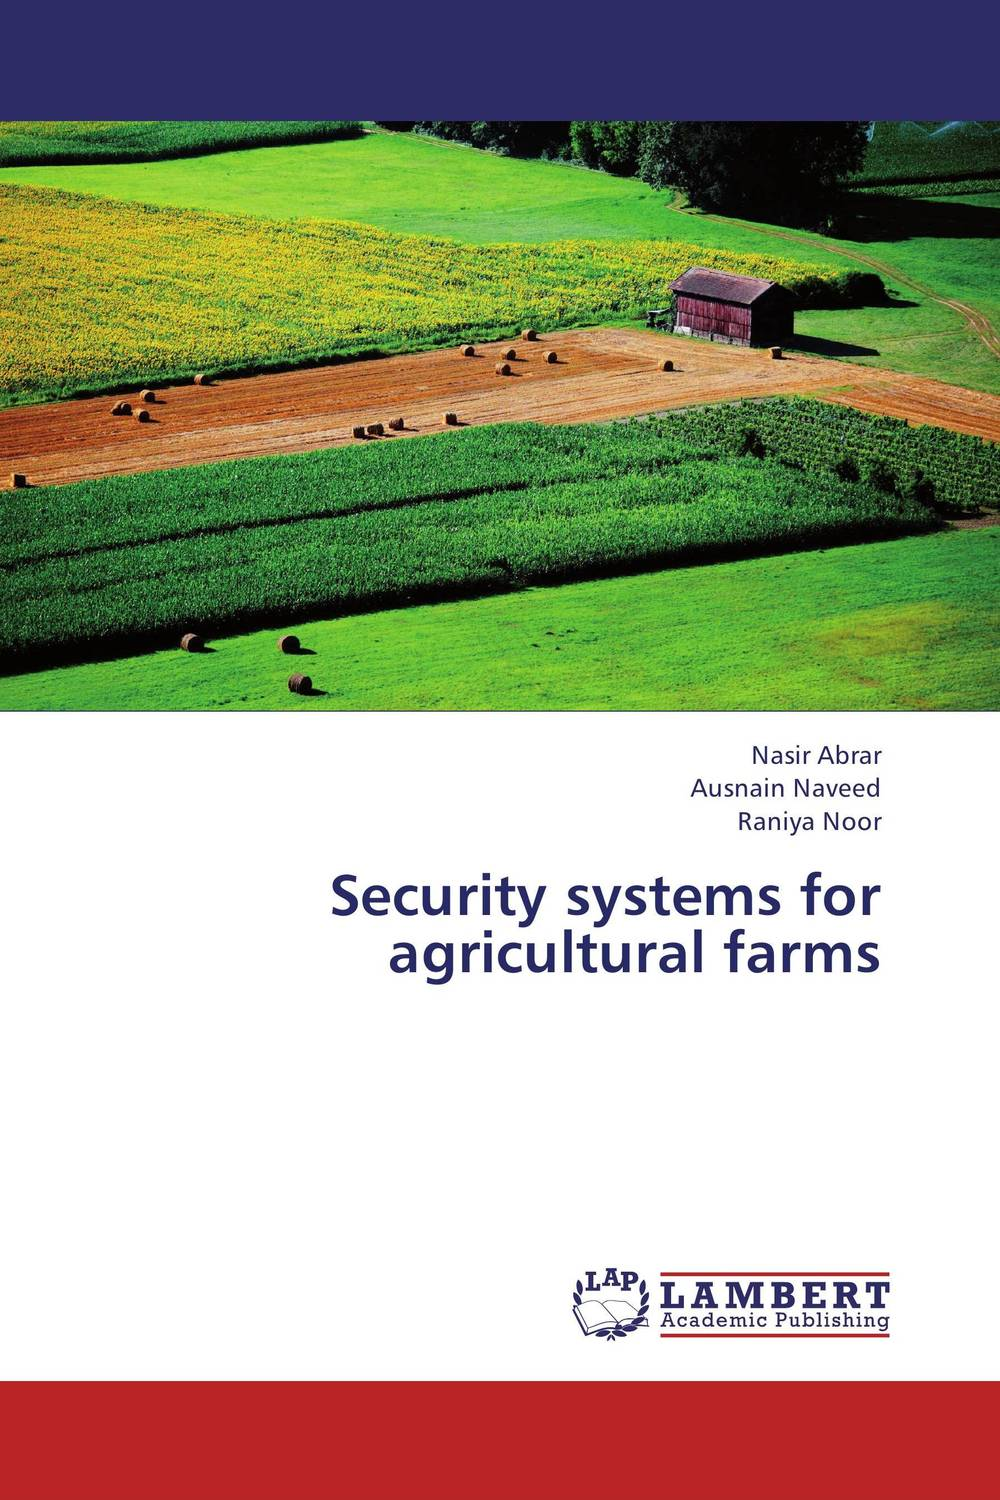 Security systems for agricultural farms belousov a security features of banknotes and other documents methods of authentication manual денежные билеты бланки ценных бумаг и документов